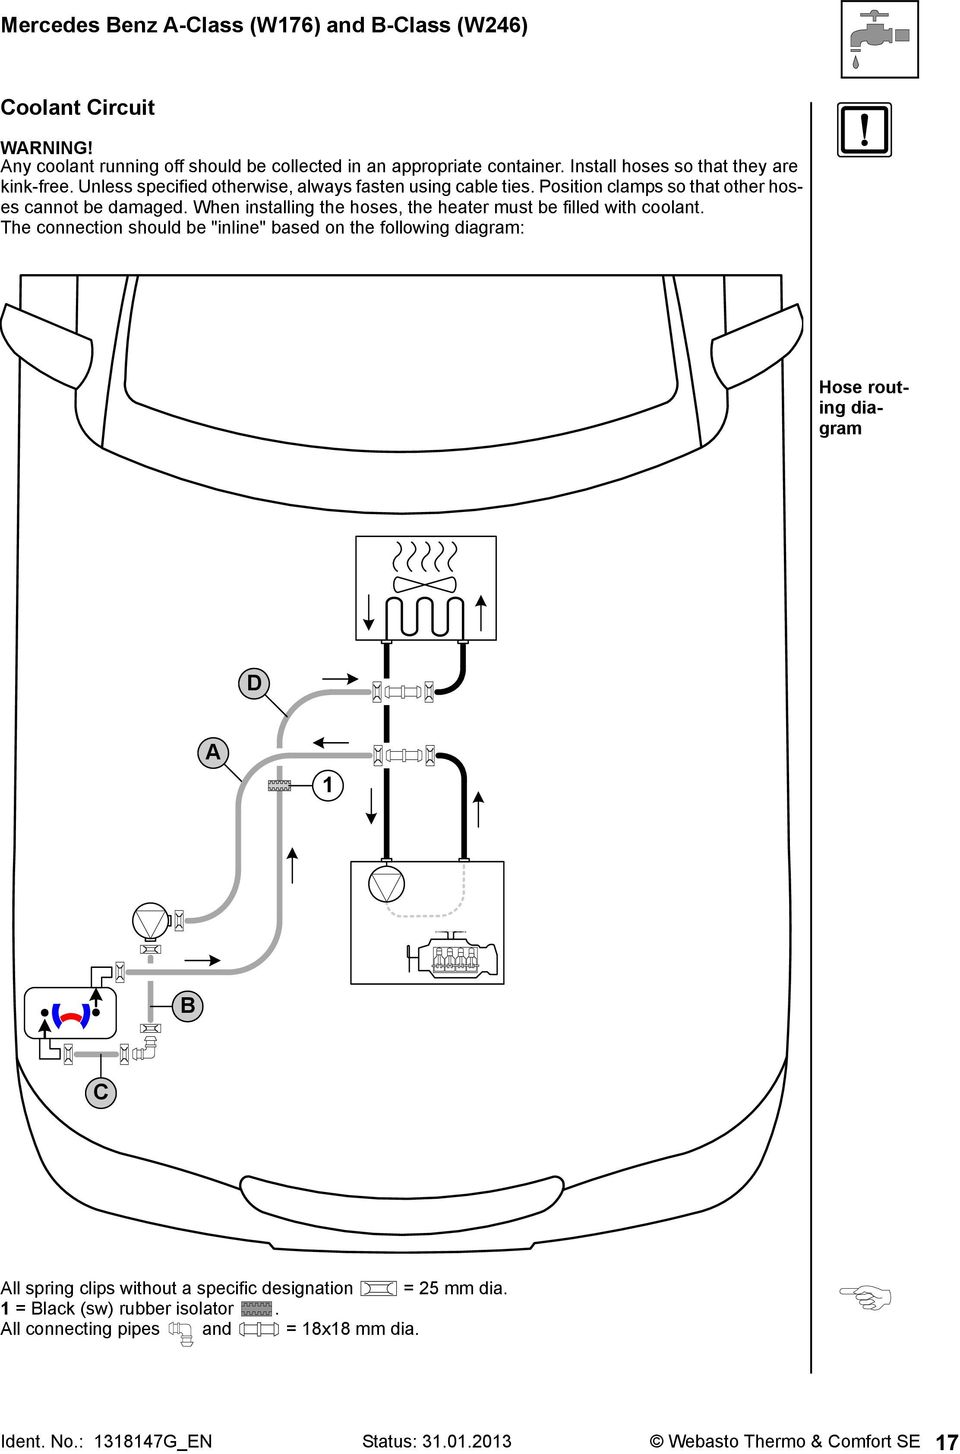 medium resolution of when installing the hoses the heater must be filled with coolant